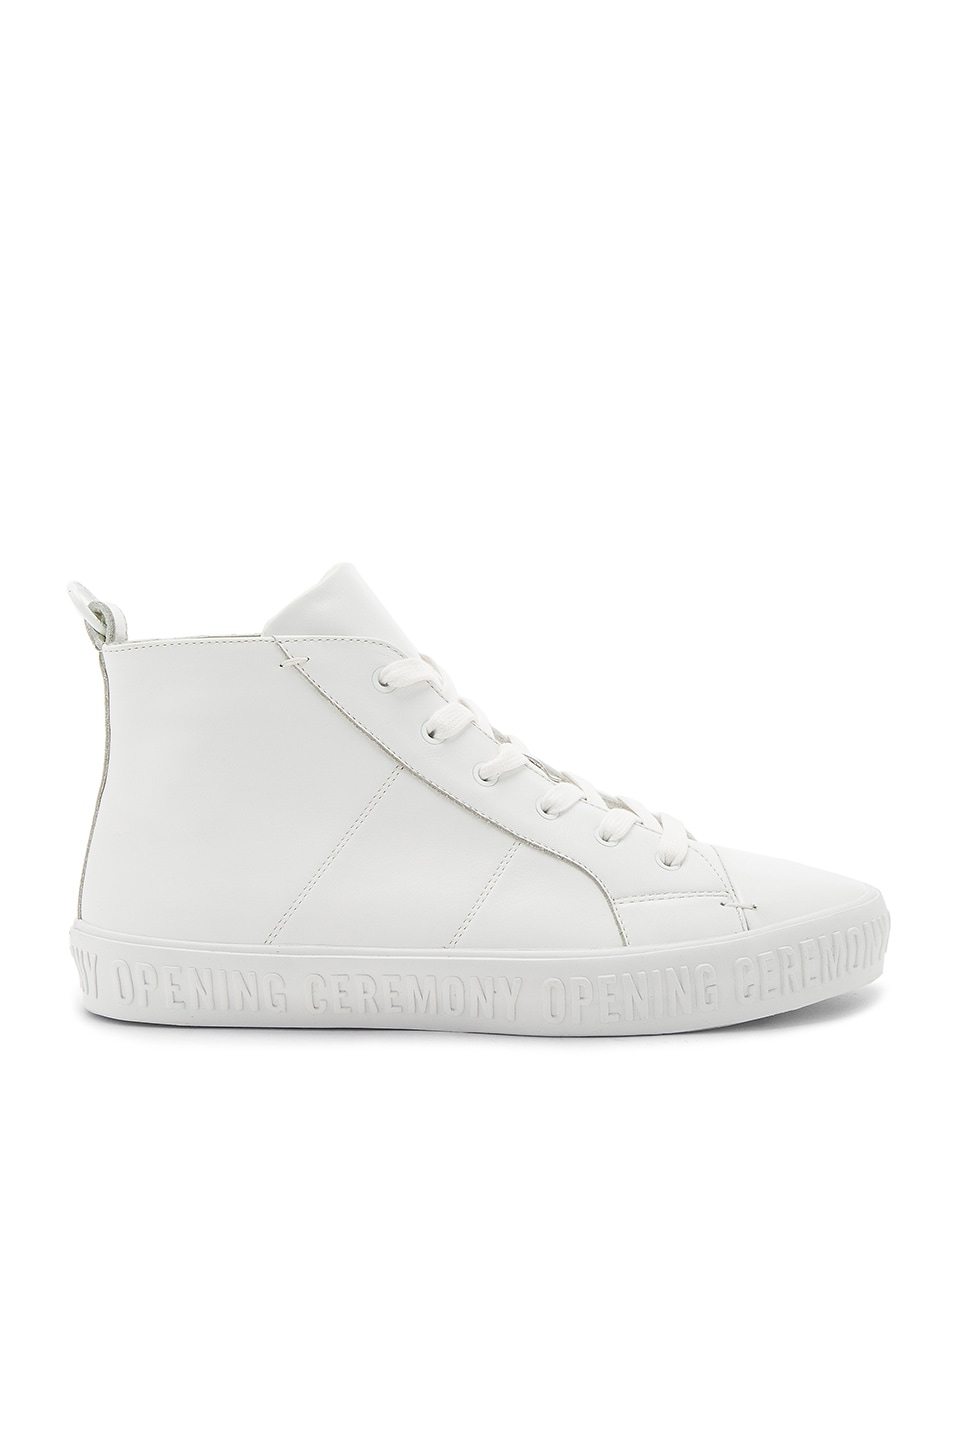 Ervicc Lace Up Sneakers by Opening Ceremony